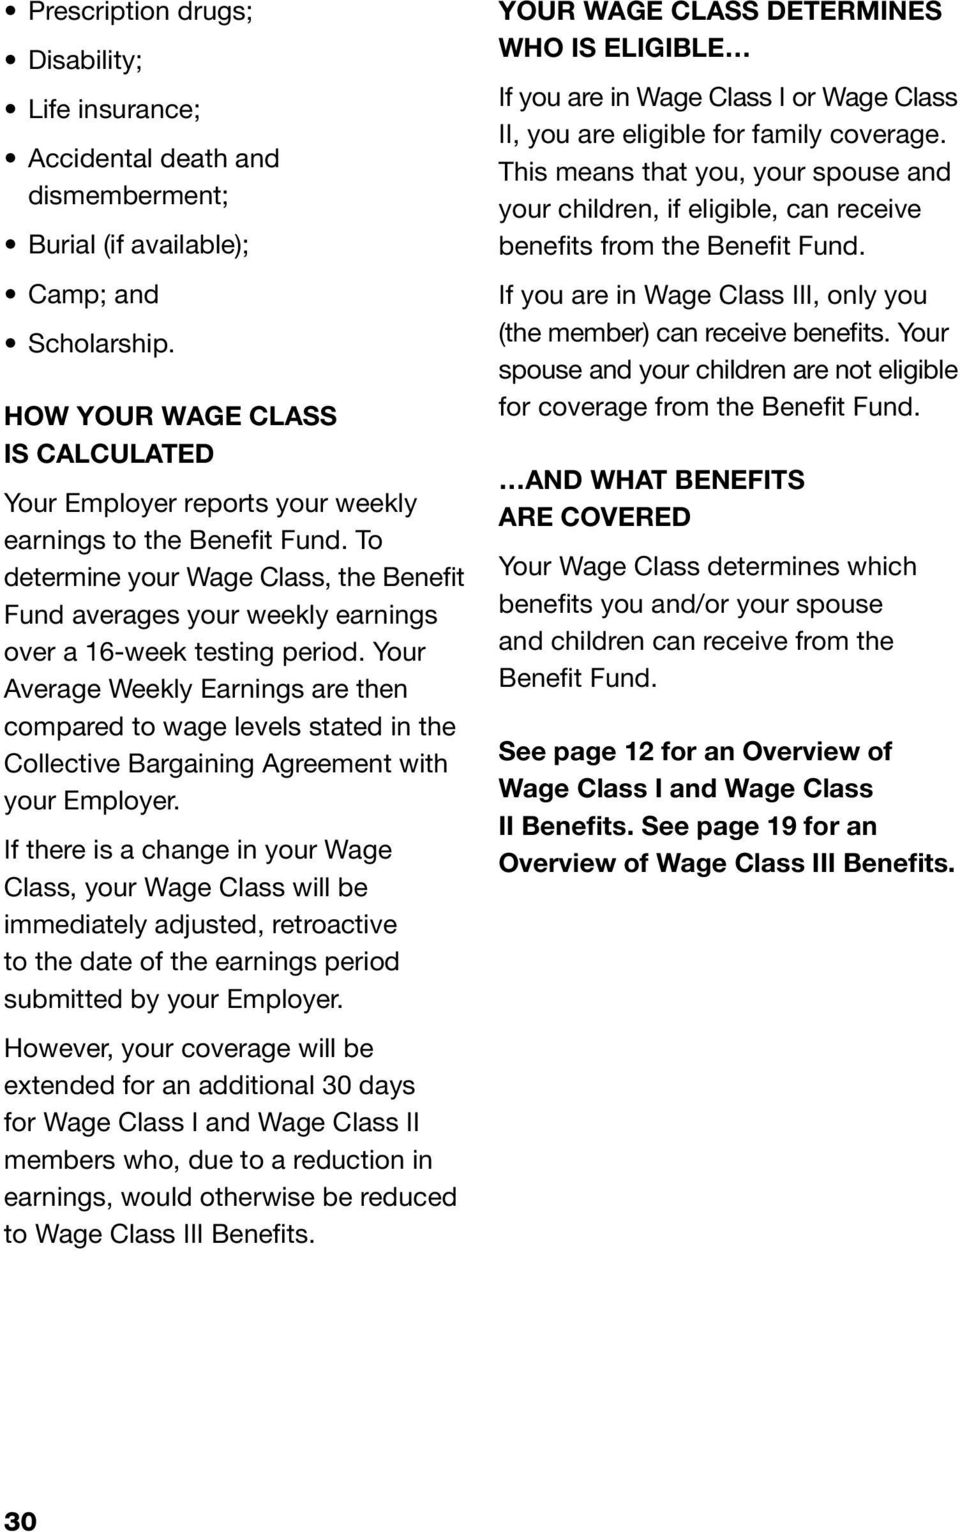 To determine your Wage Class, the Benefit Fund averages your weekly earnings over a 16-week testing period.